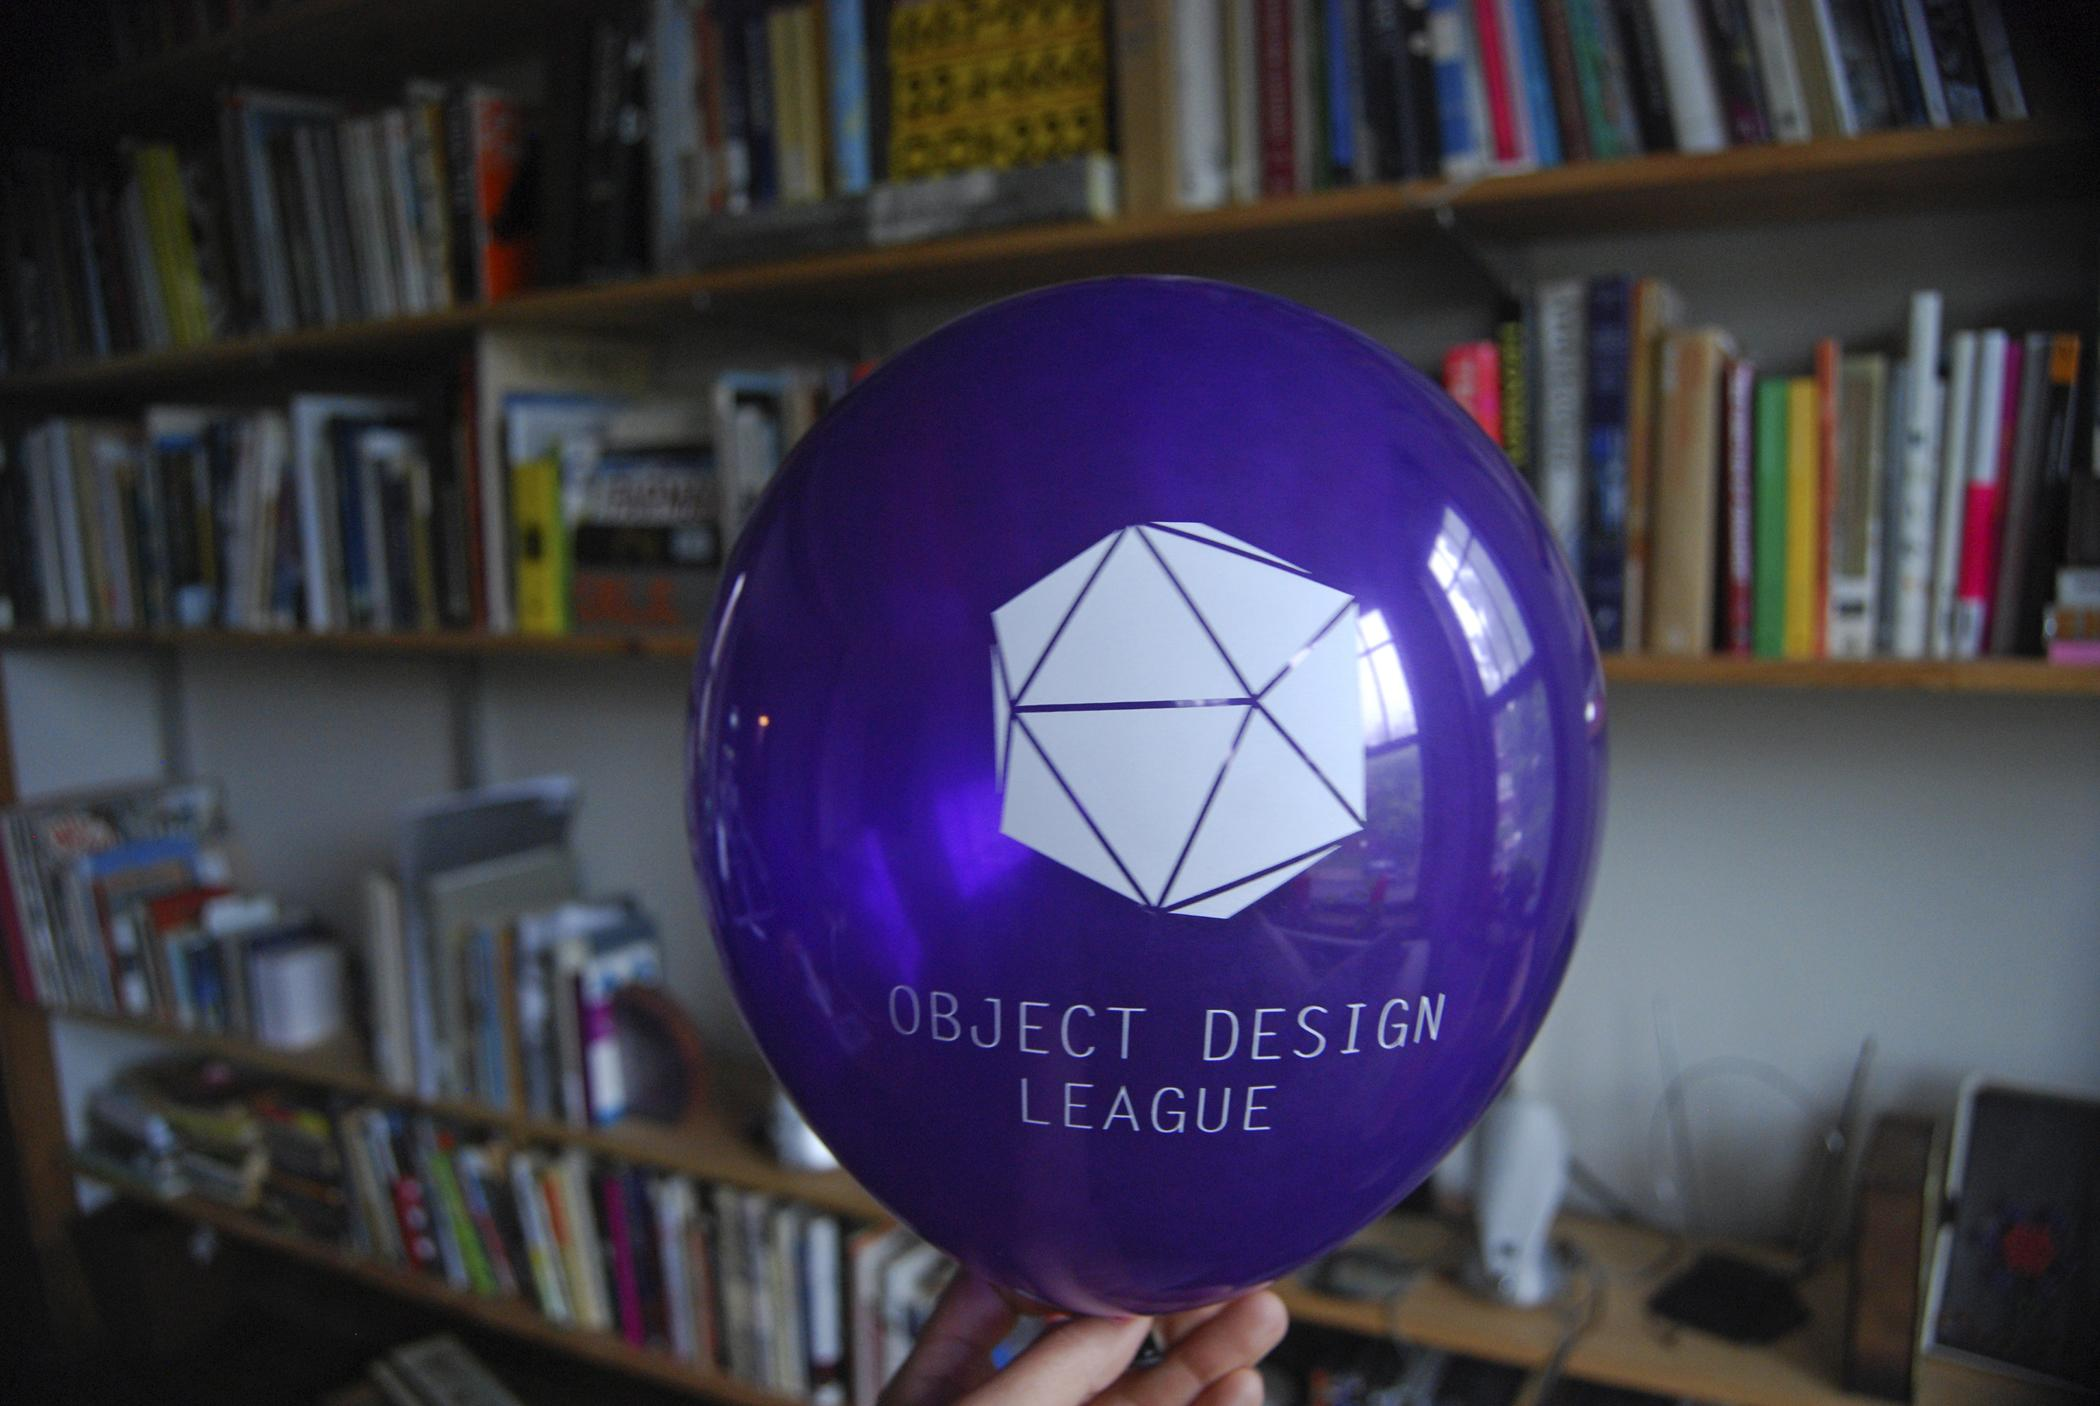 """A photograph shows a purple ballon with a geometric shape printed in white and white text """"OBJECT DESIGN LEAGUE"""" with a blurry background of several shelves of books."""